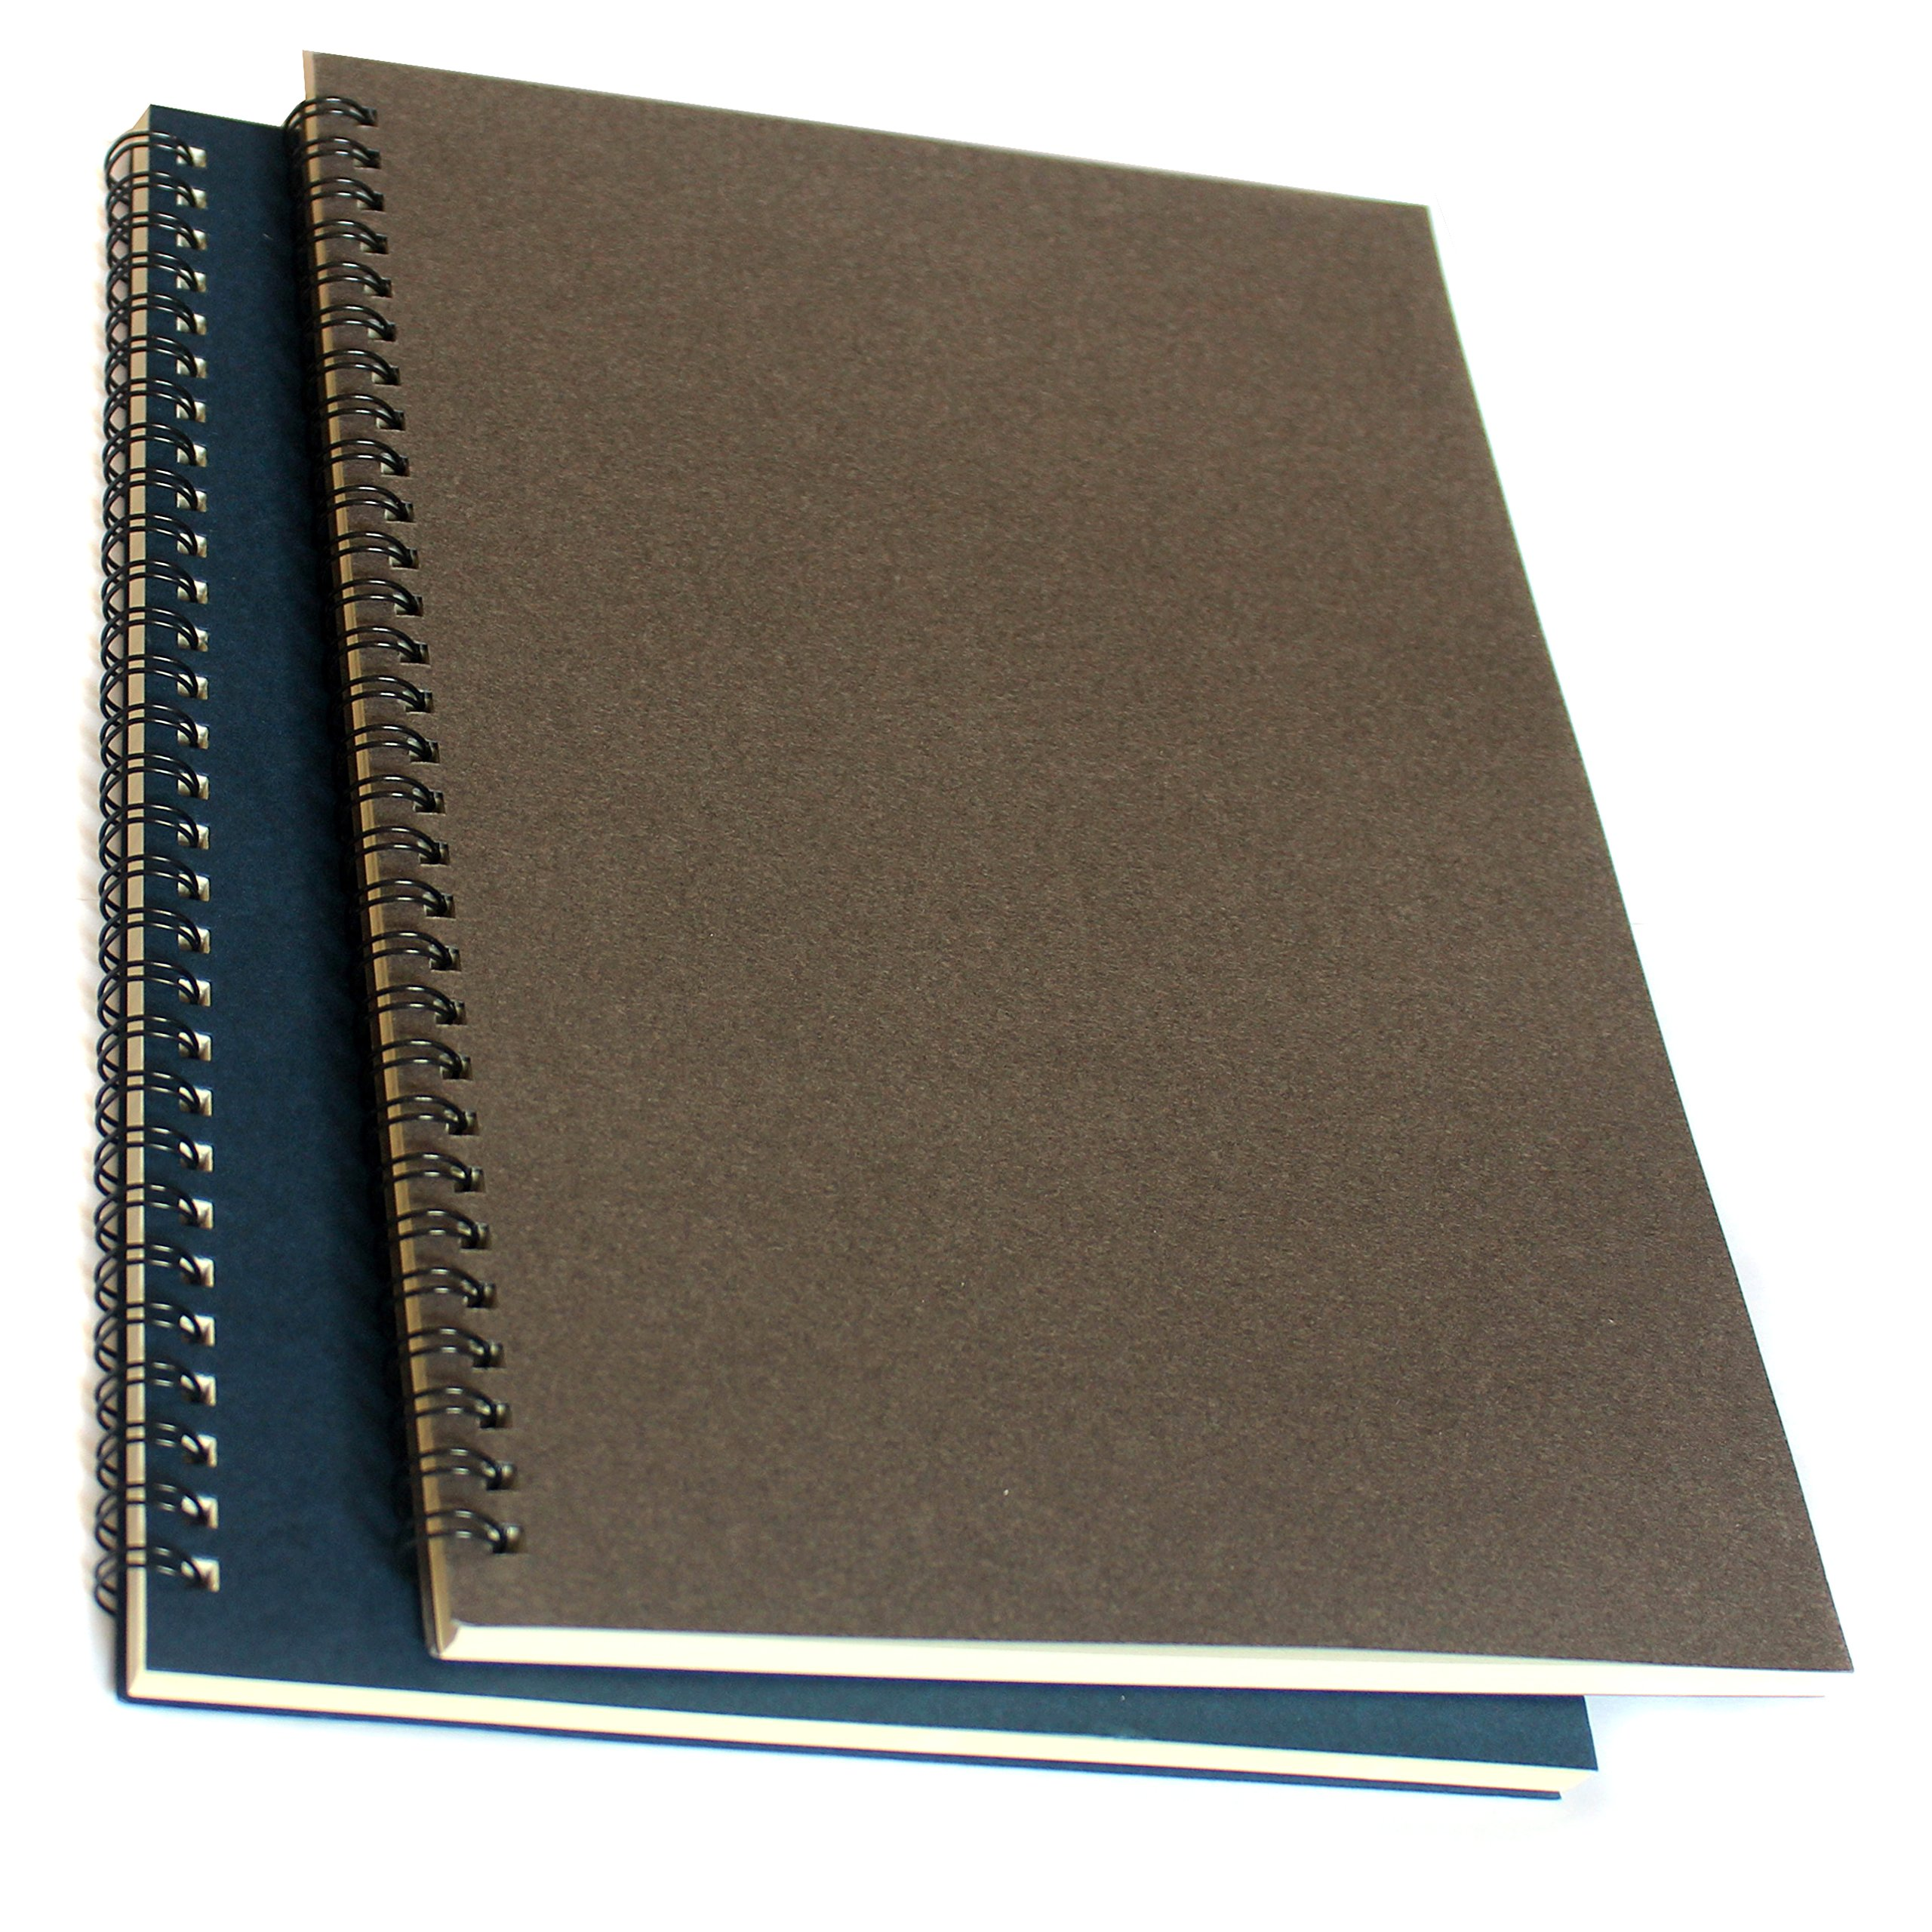 Spiral Notebook/Spiral Journal, Spiral Softcover Notebook, Lined Pages, 2 Notebooks Per Pack/Total 120 Sheets (240 Pages)-B5,10.5'' x 7.5''